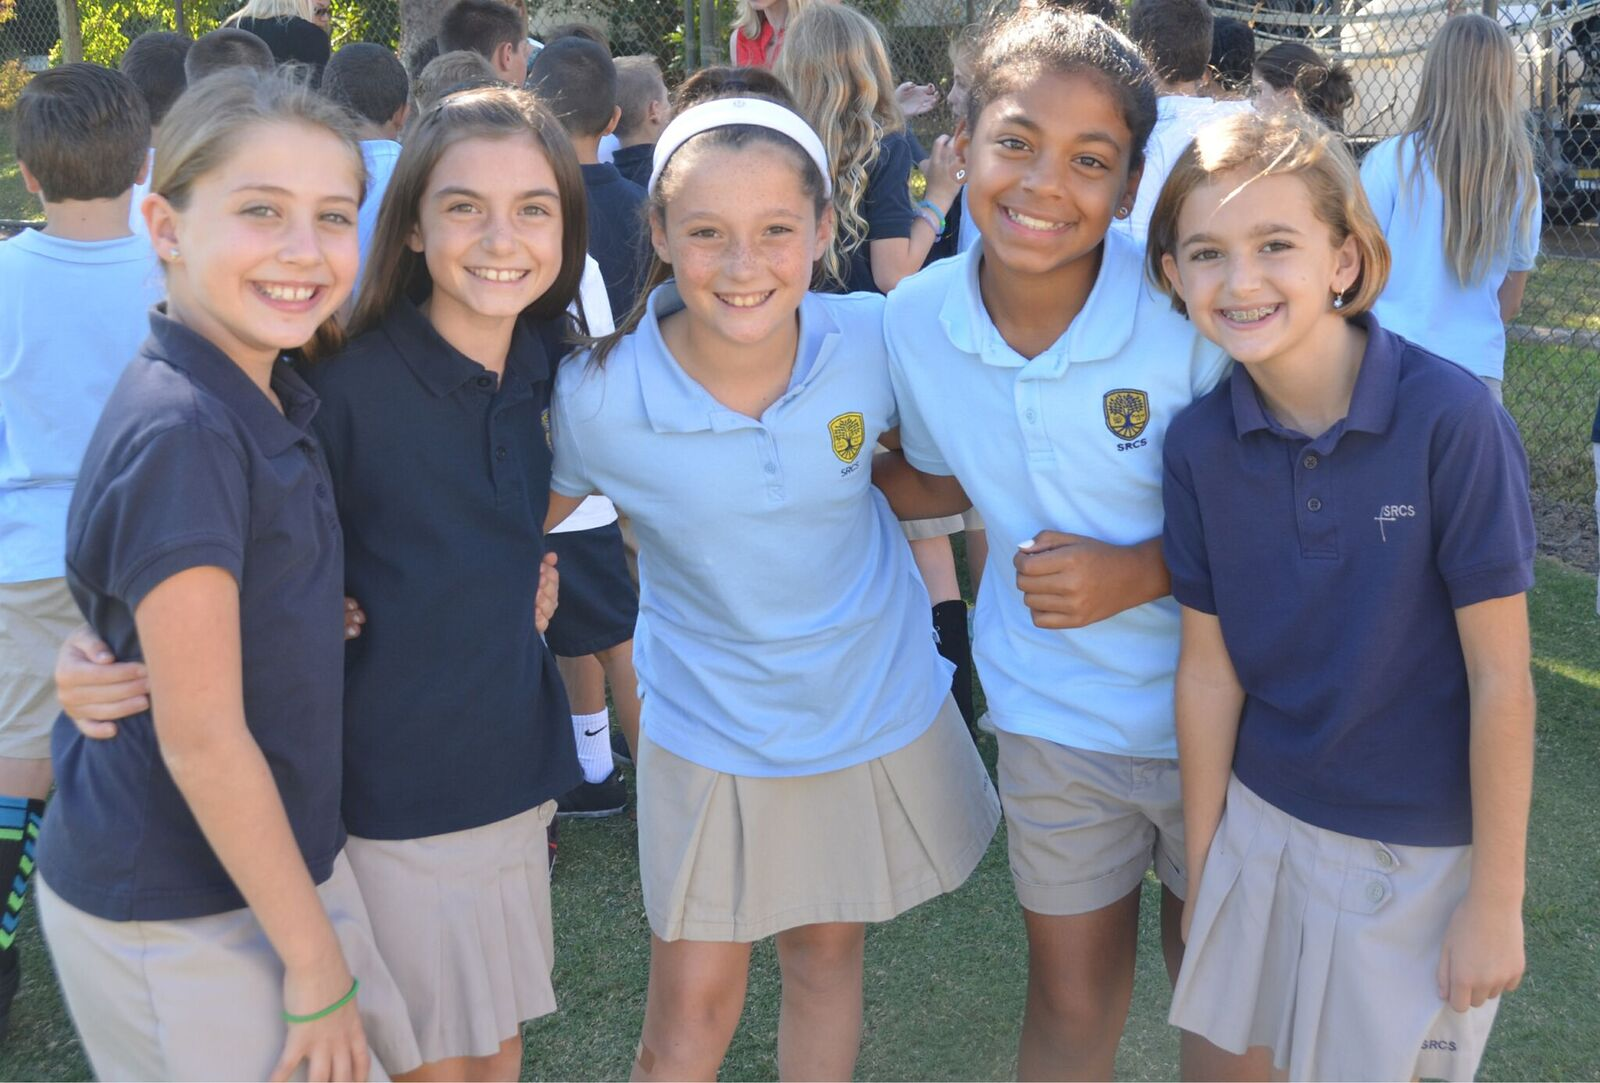 Quick Facts - Spanish River Christian School